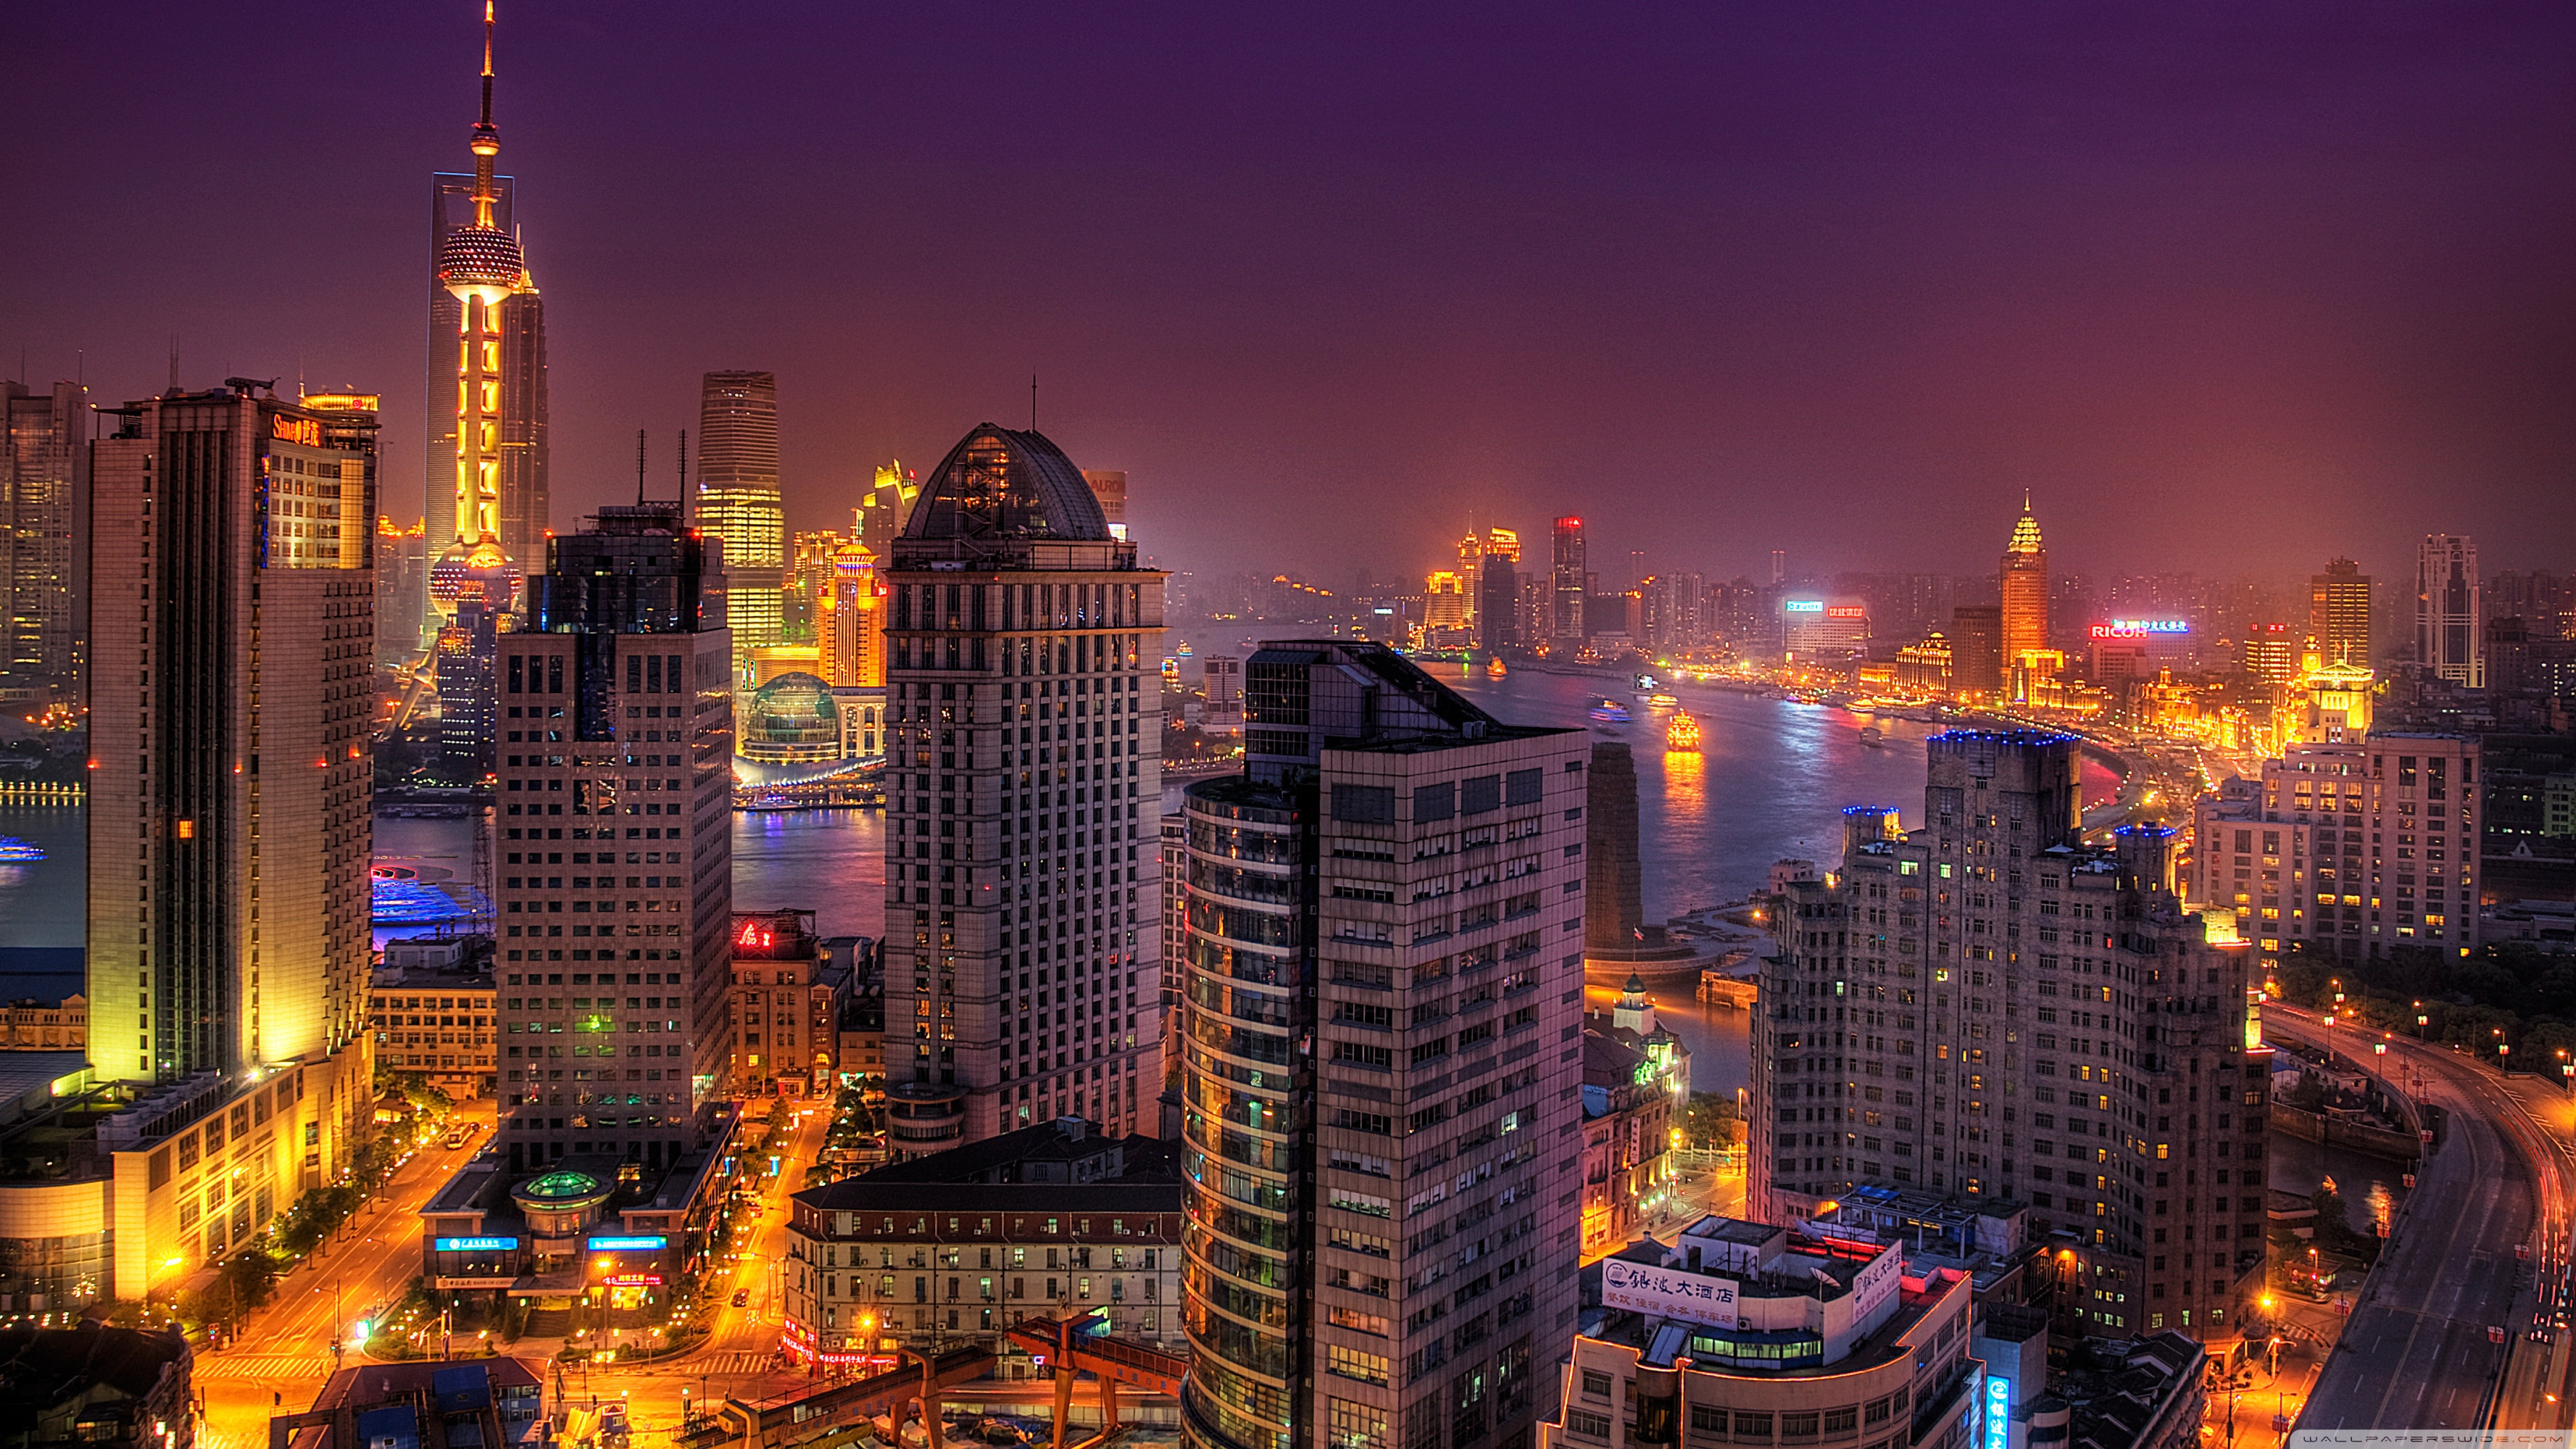 Night City Wallpaper 1920x1080 Posted By John Simpson